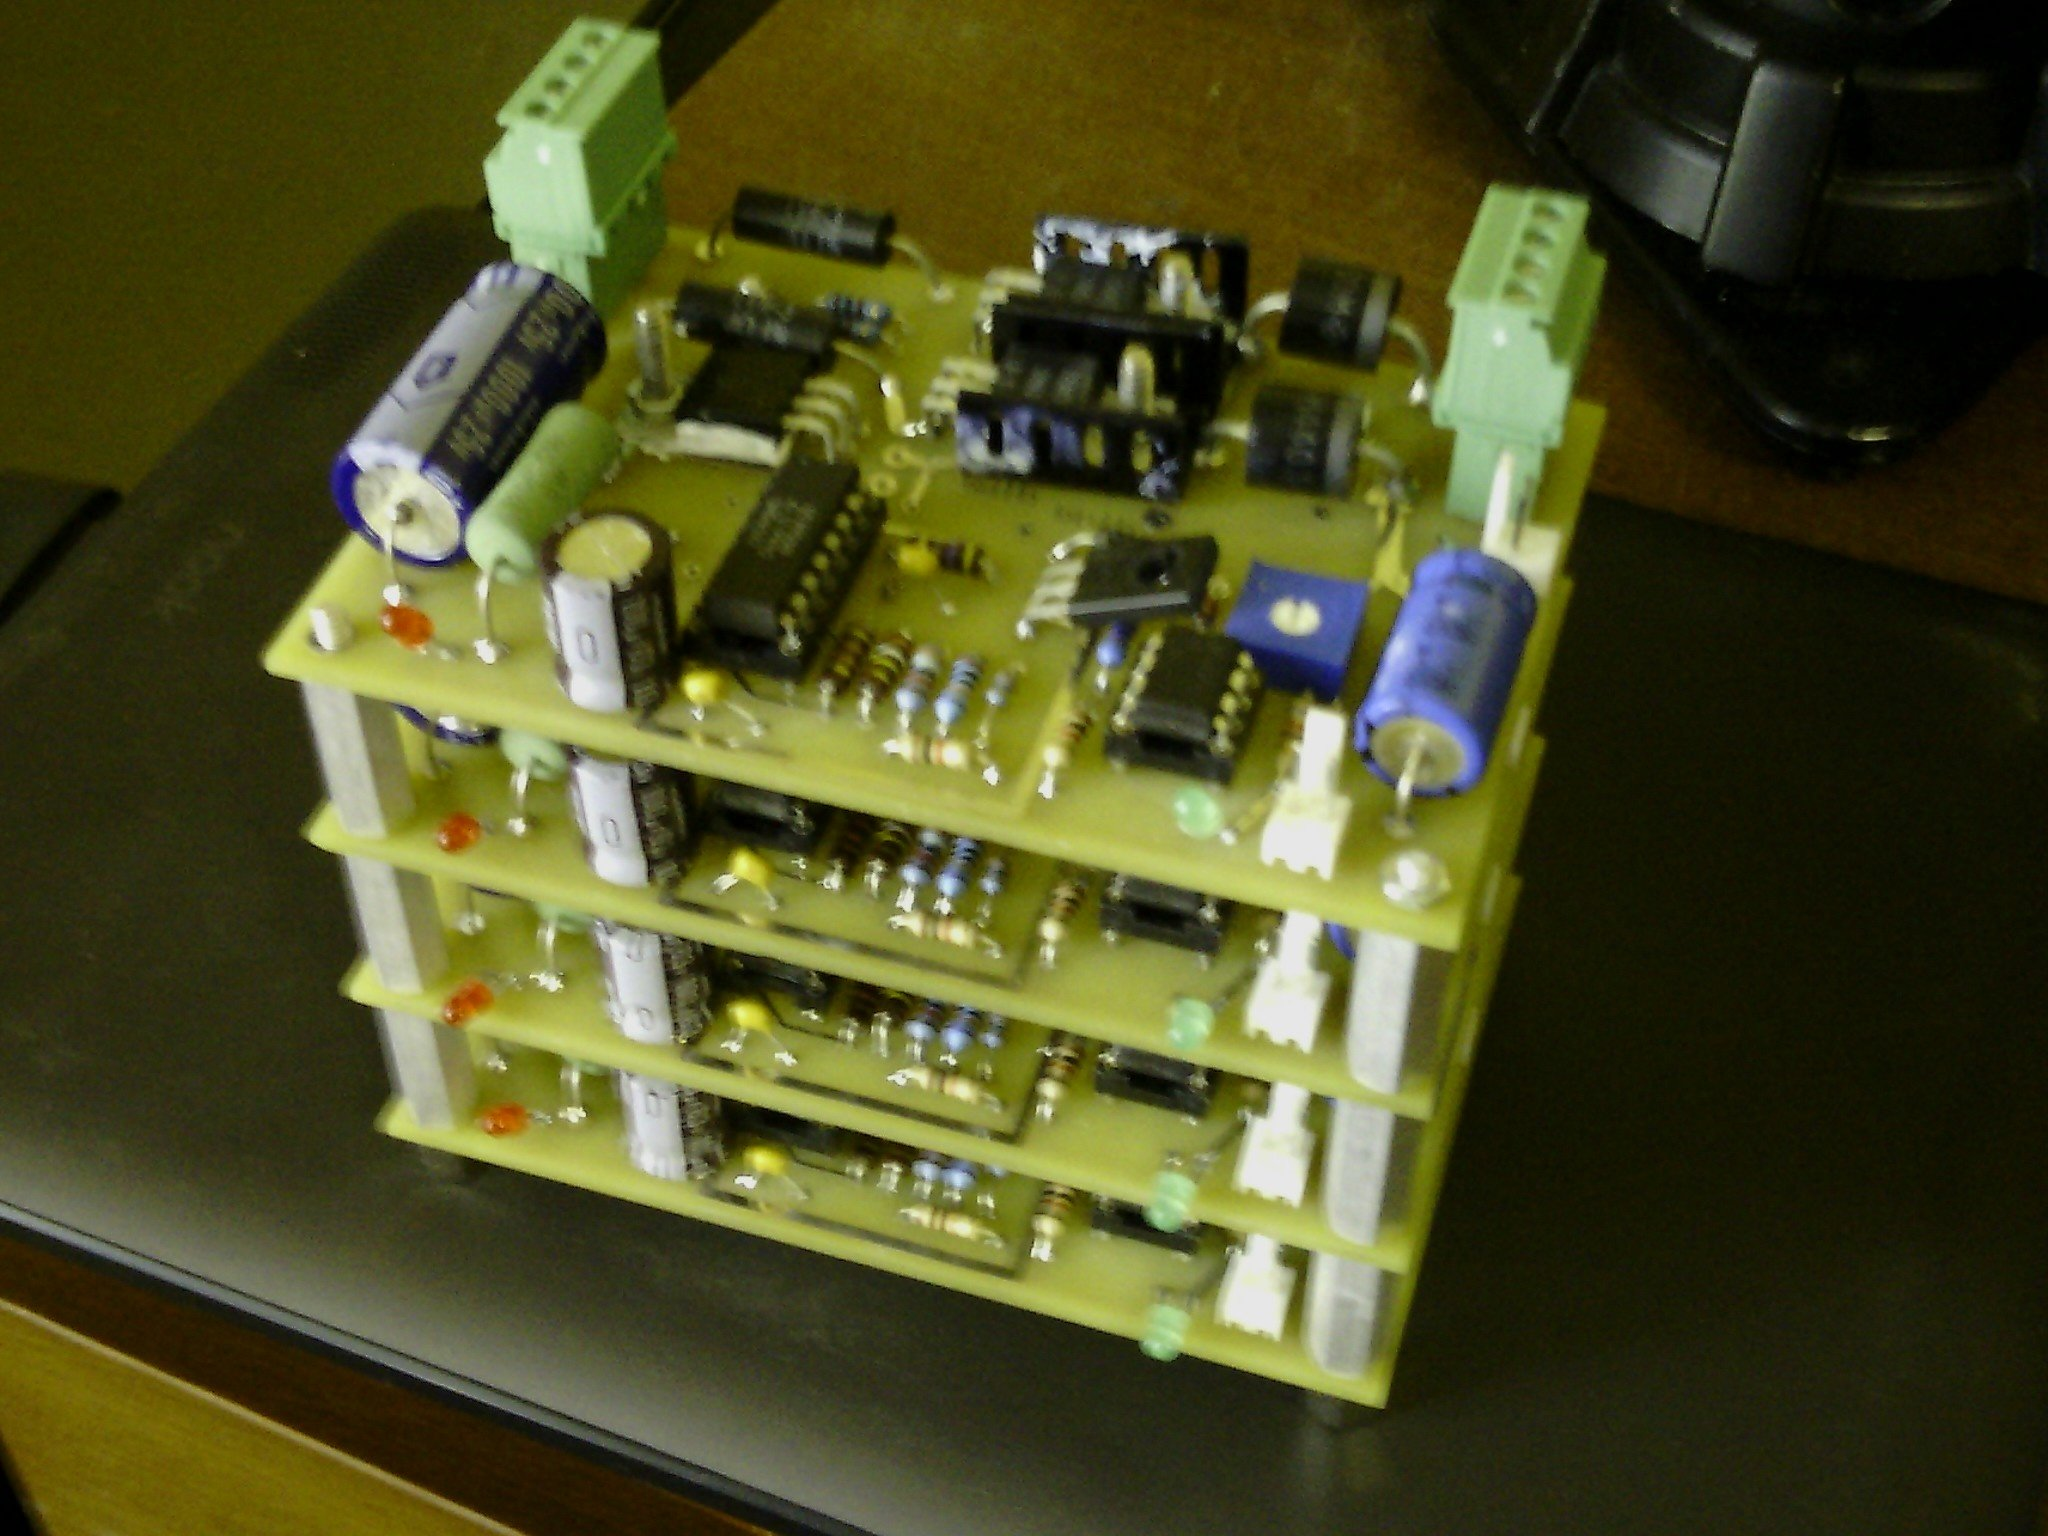 What Is Pcb In Electronics Quora Printed Circuit Boards Bare Board Her A Pic Of An Assembly I Designed And Made 4 Identical The Was